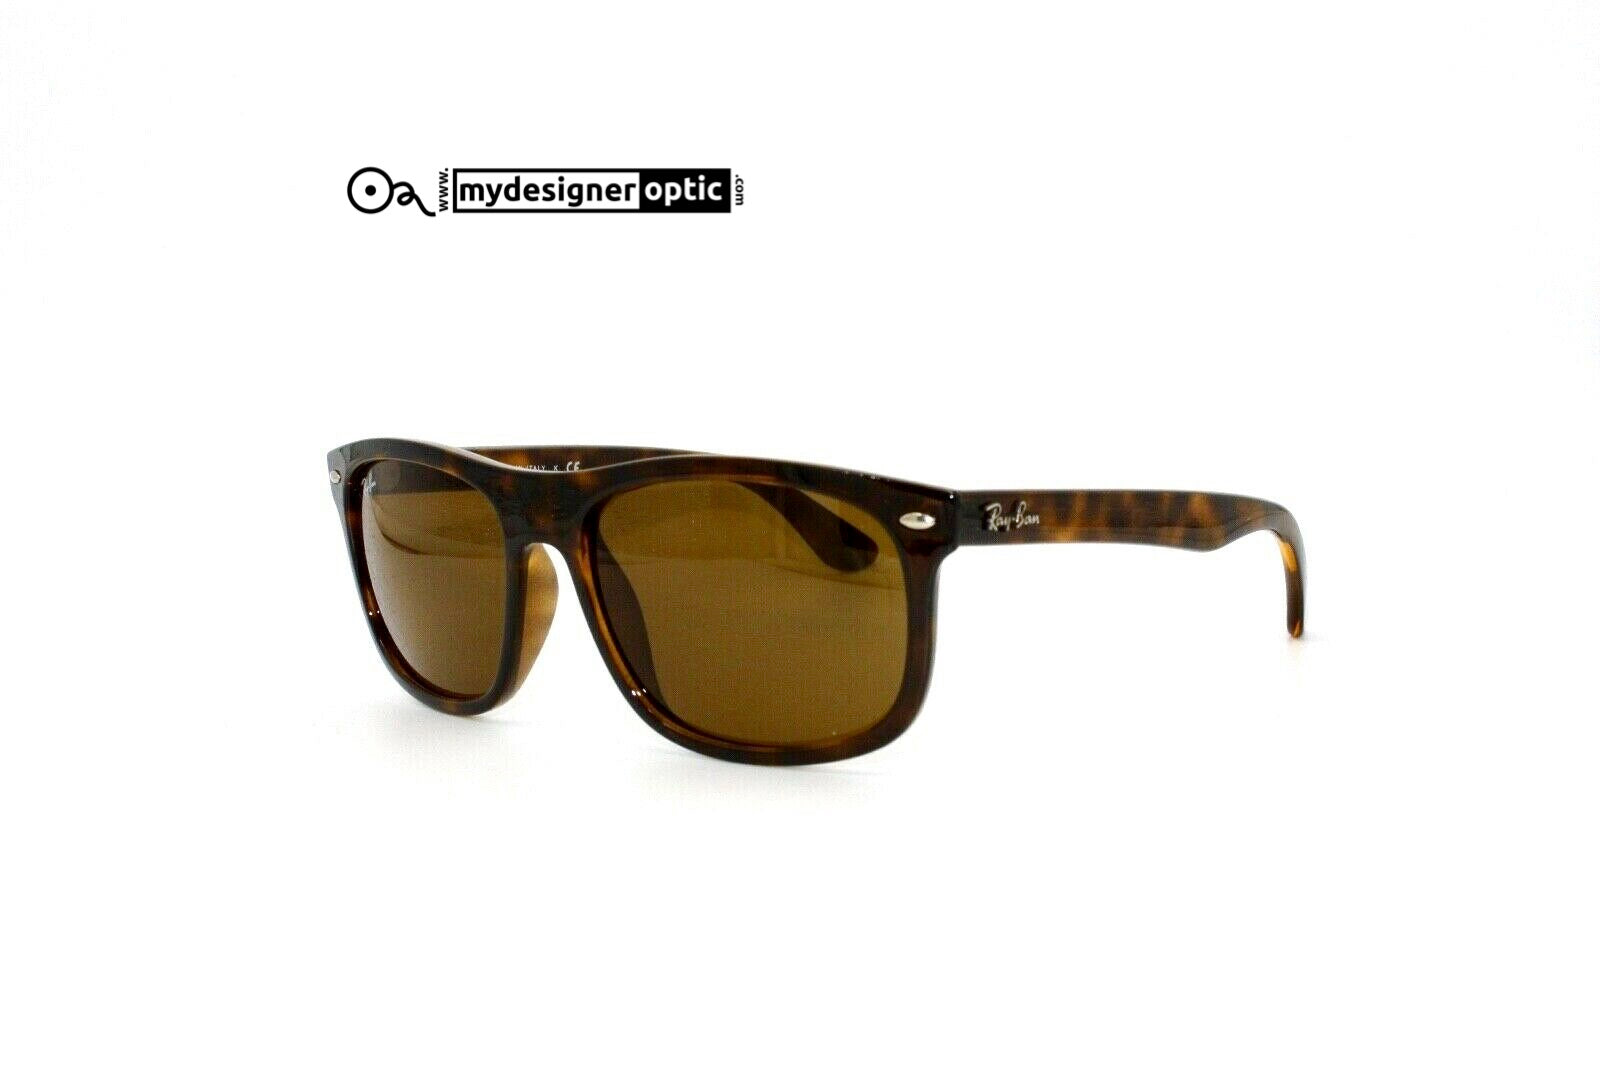 Ray Ban Sunglasses RB 4226 710/73 56-16 145 3N Made in Italy - Mydesigneroptic